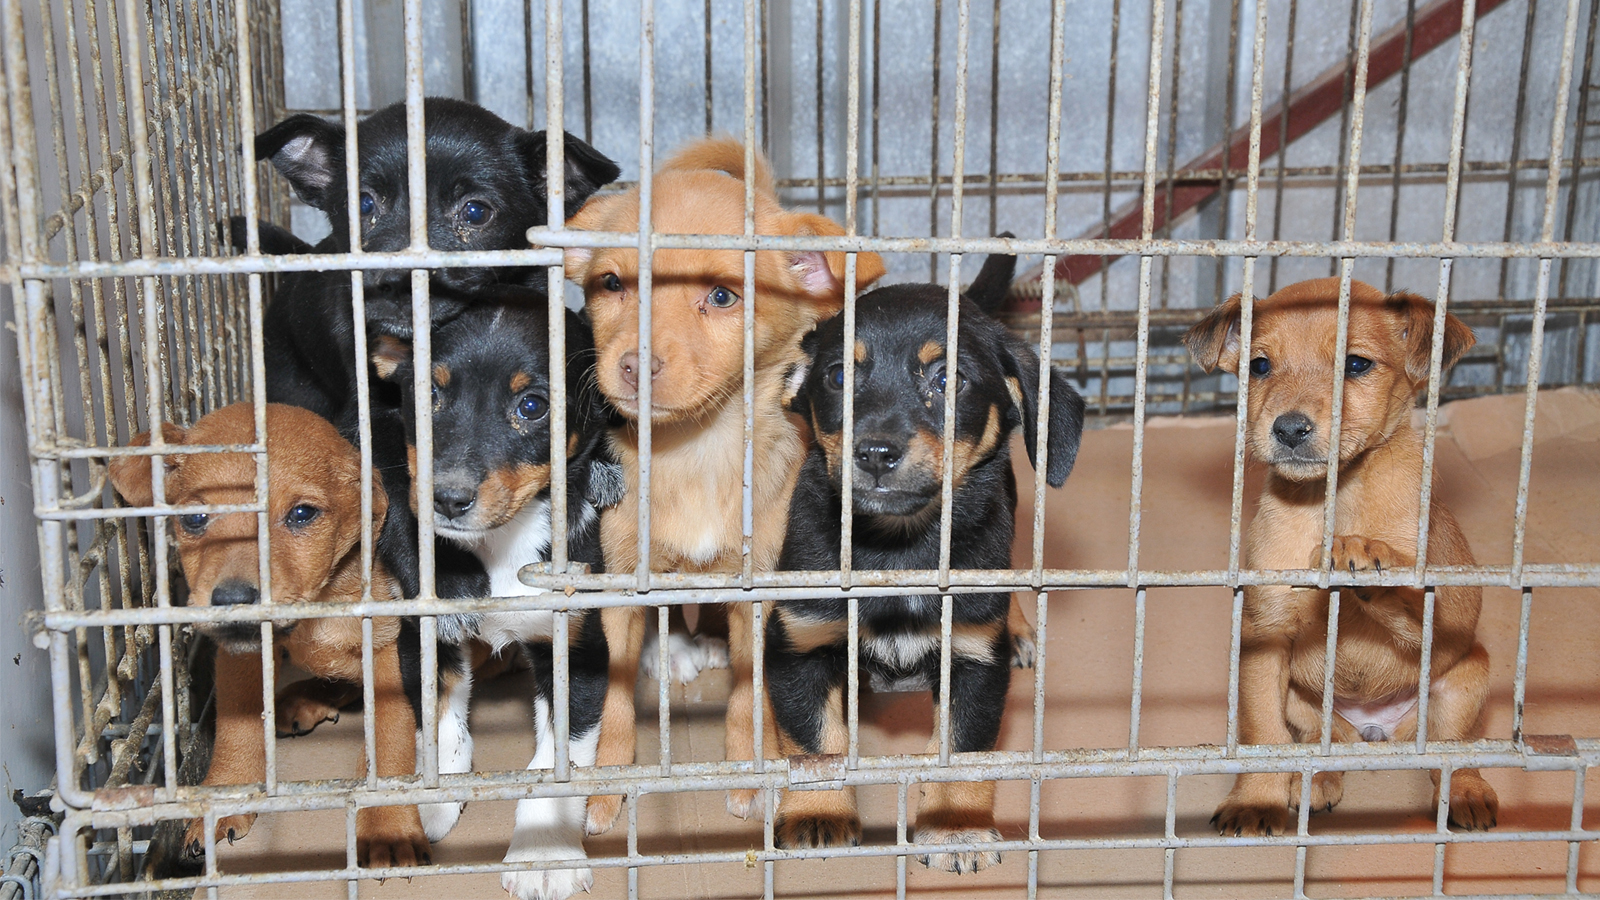 Lawsuit Moves Forward Against Pet Store and Phony Rescue Operations for Illegal Puppy Laundering Scheme - Animal Legal Defense Fund